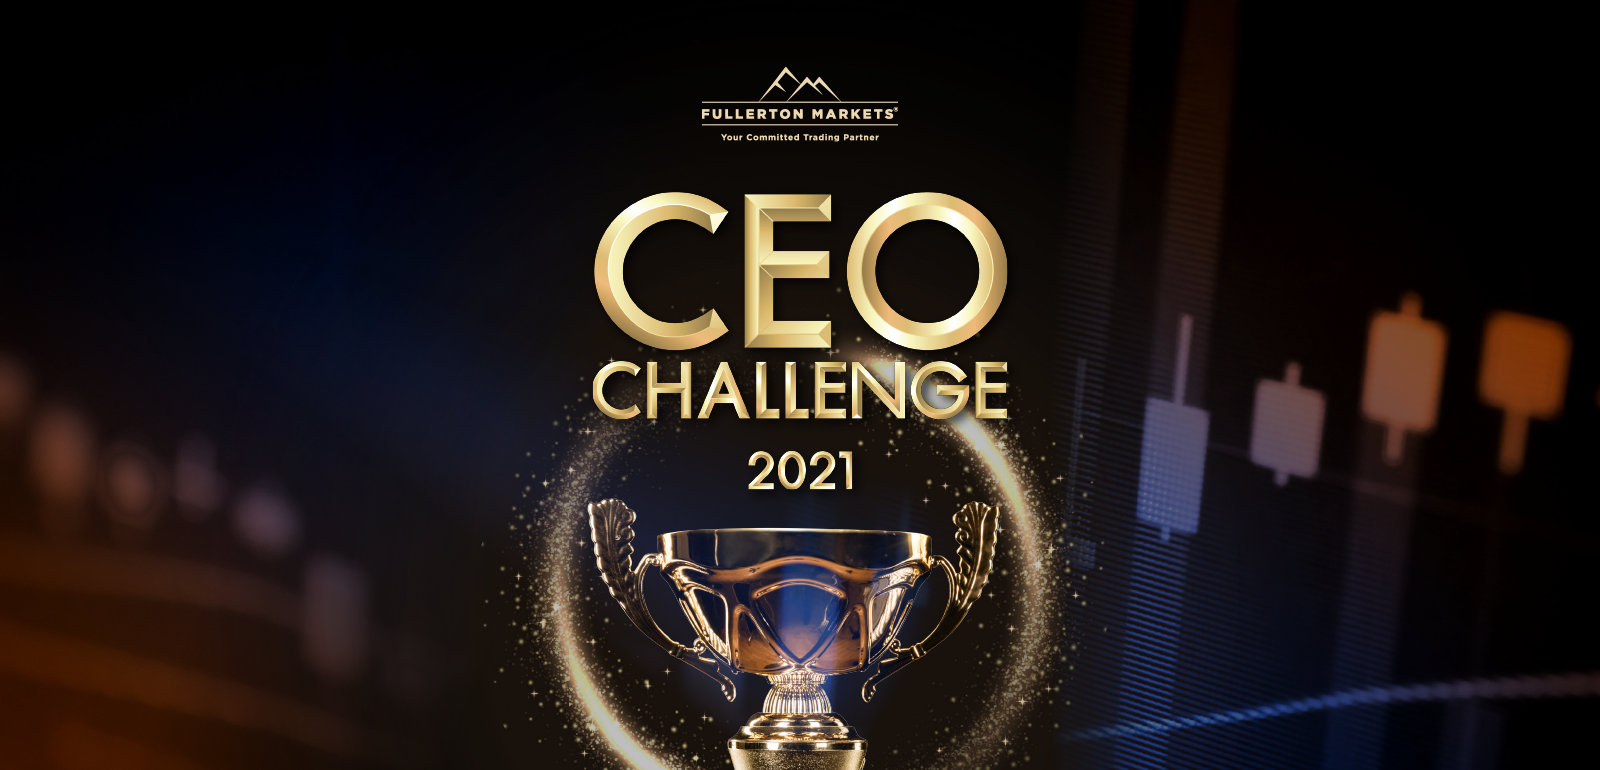 CEO-Challenge-2021